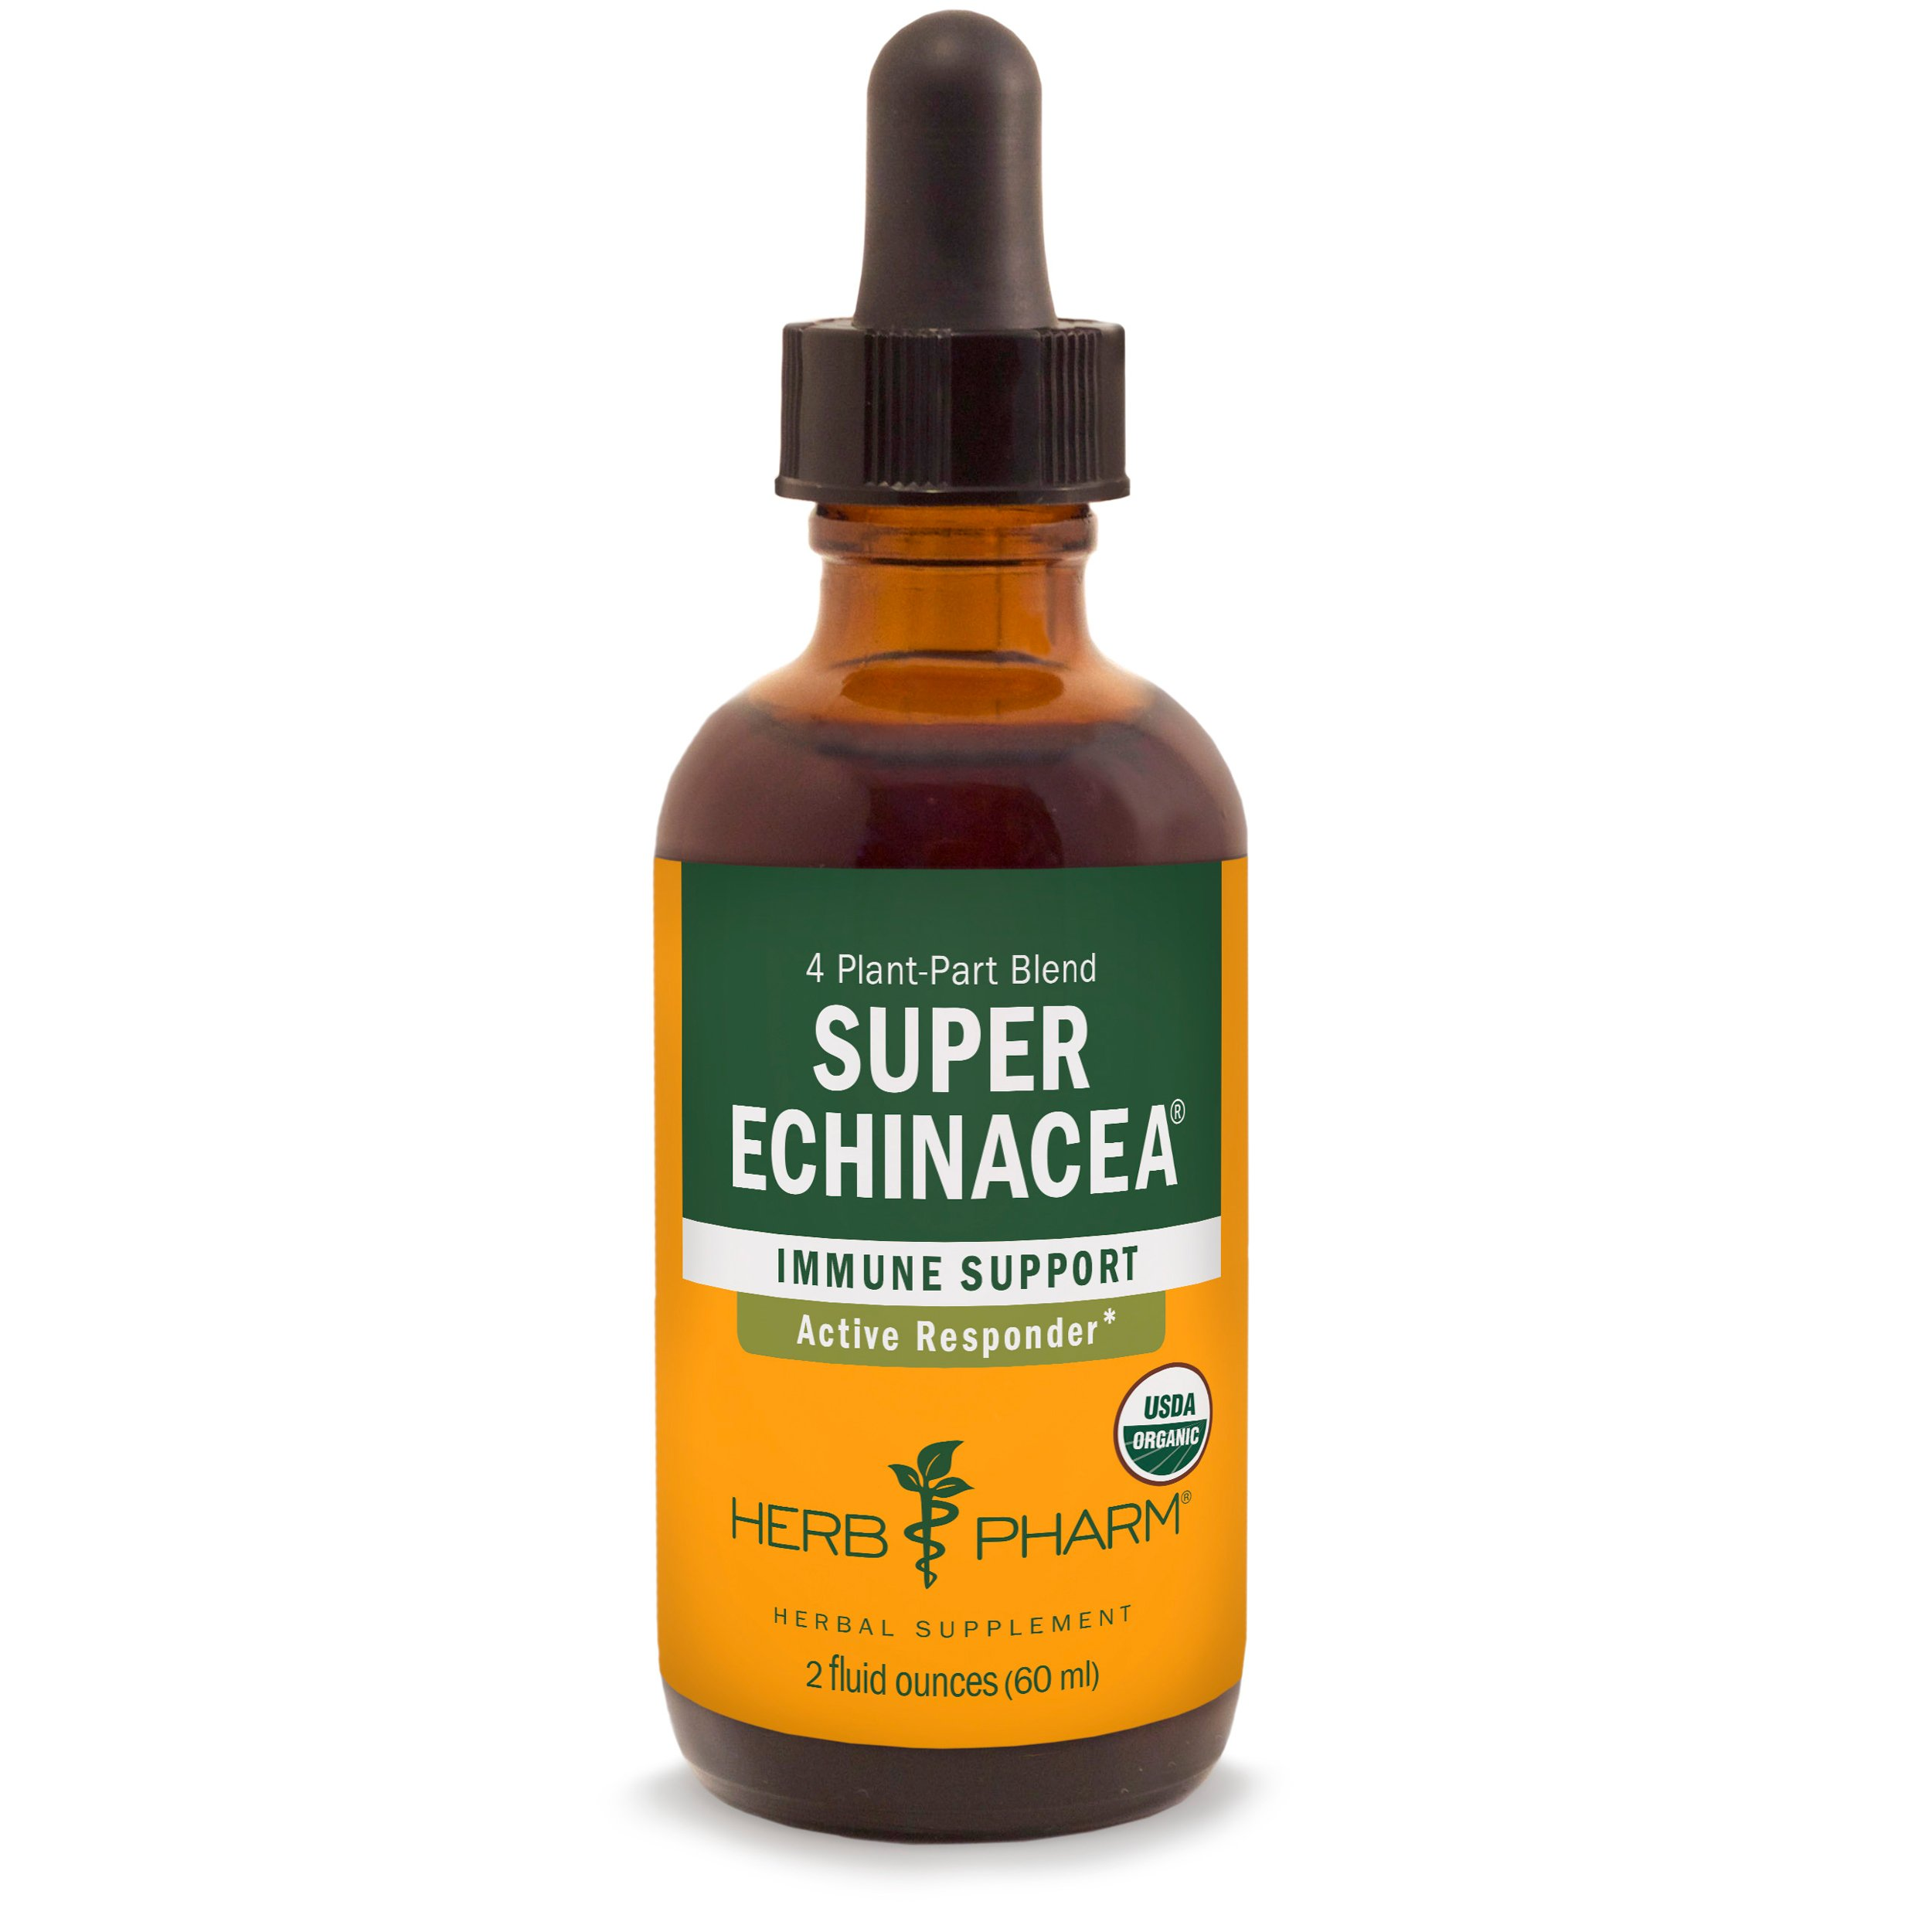 Herb Pharm Certified Organic Super Echinacea Extract for Active Immune System Support - 2 Ounce